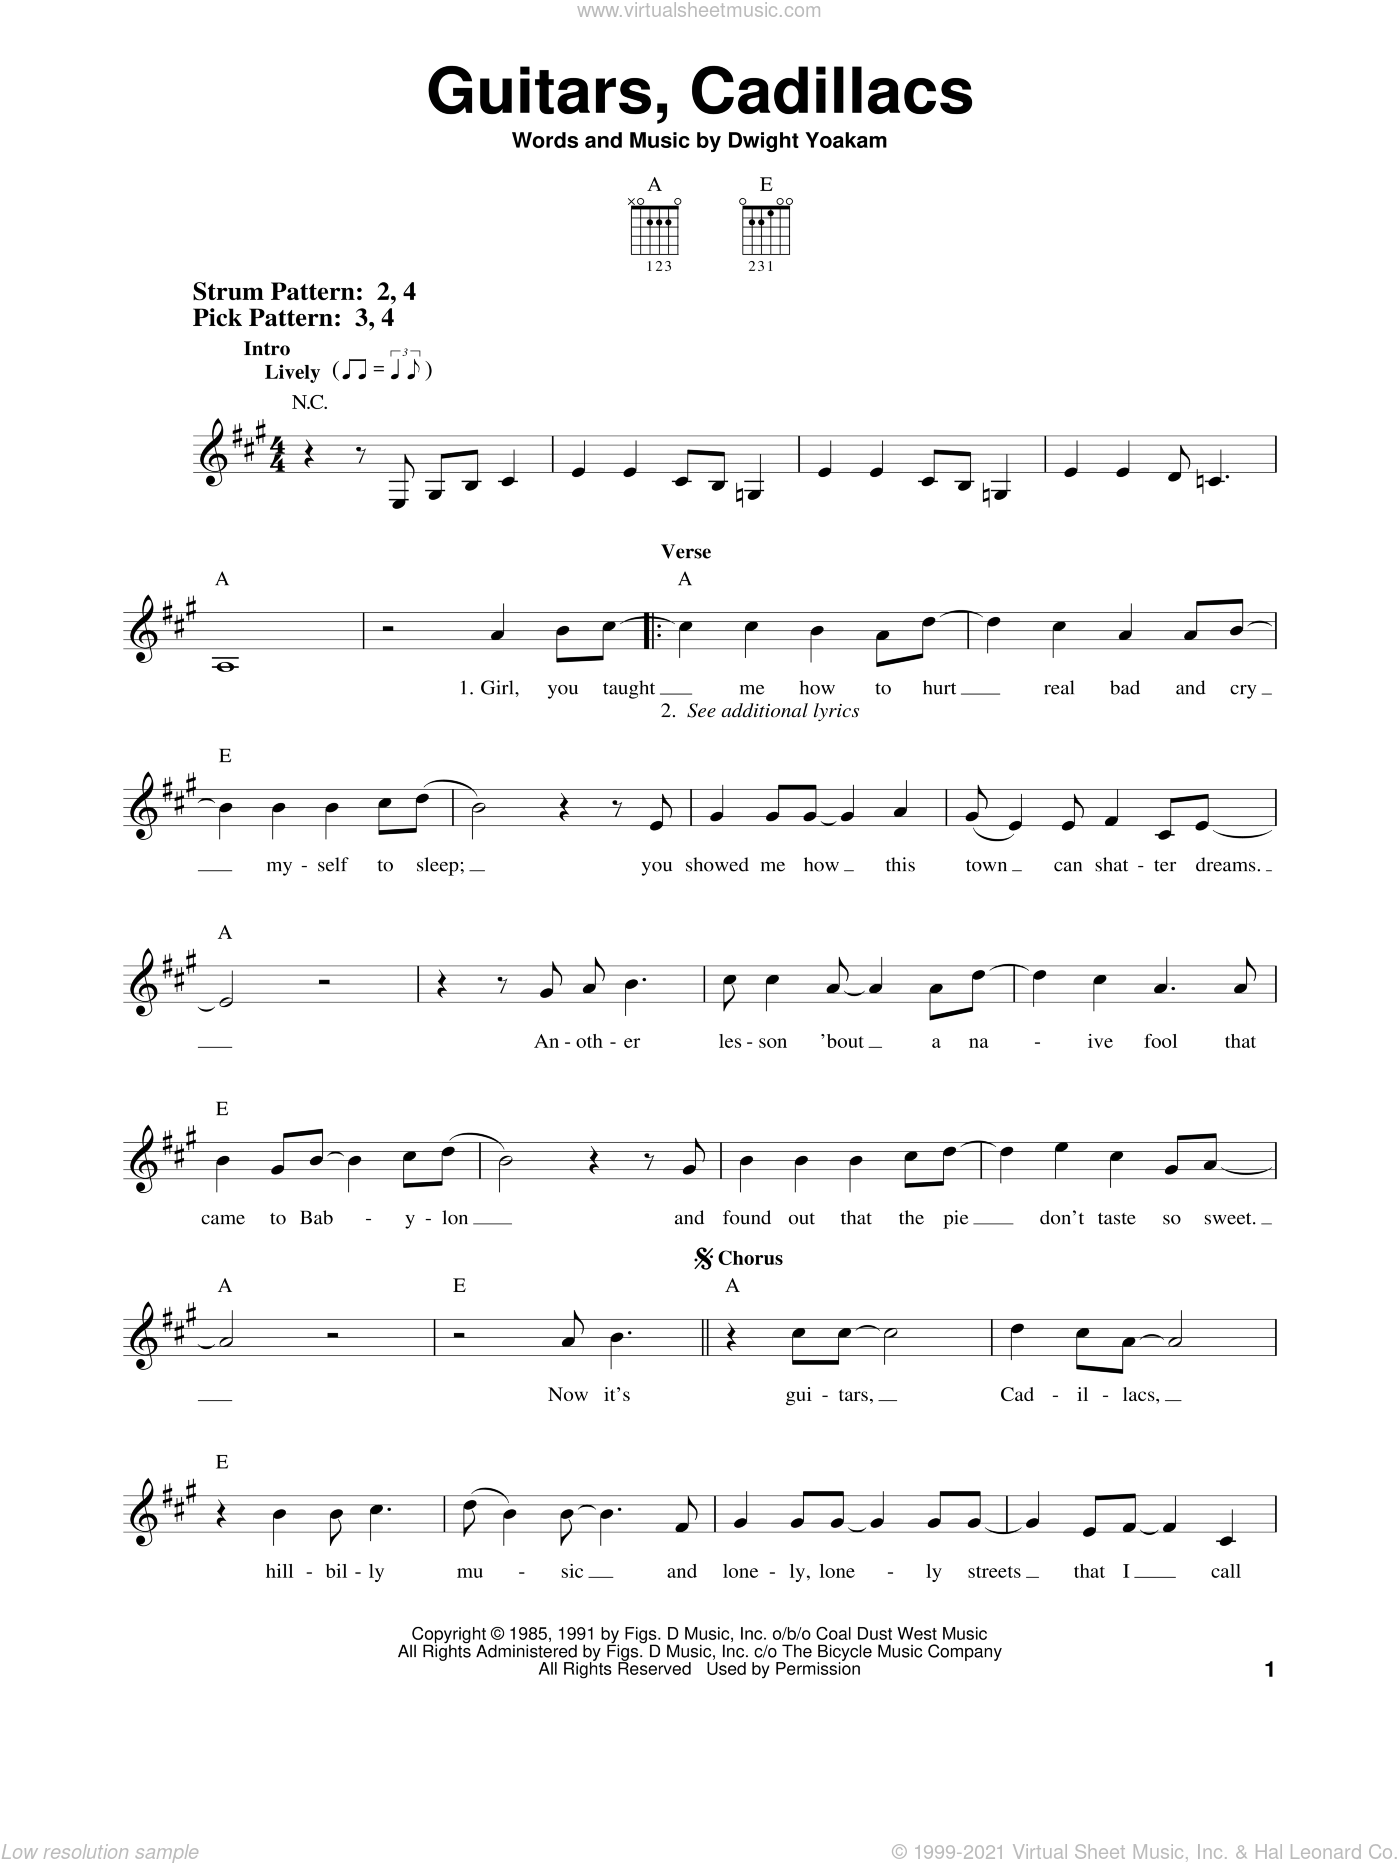 Guitars, Cadillacs sheet music for guitar solo (chords) by Dwight Yoakam. Score Image Preview.